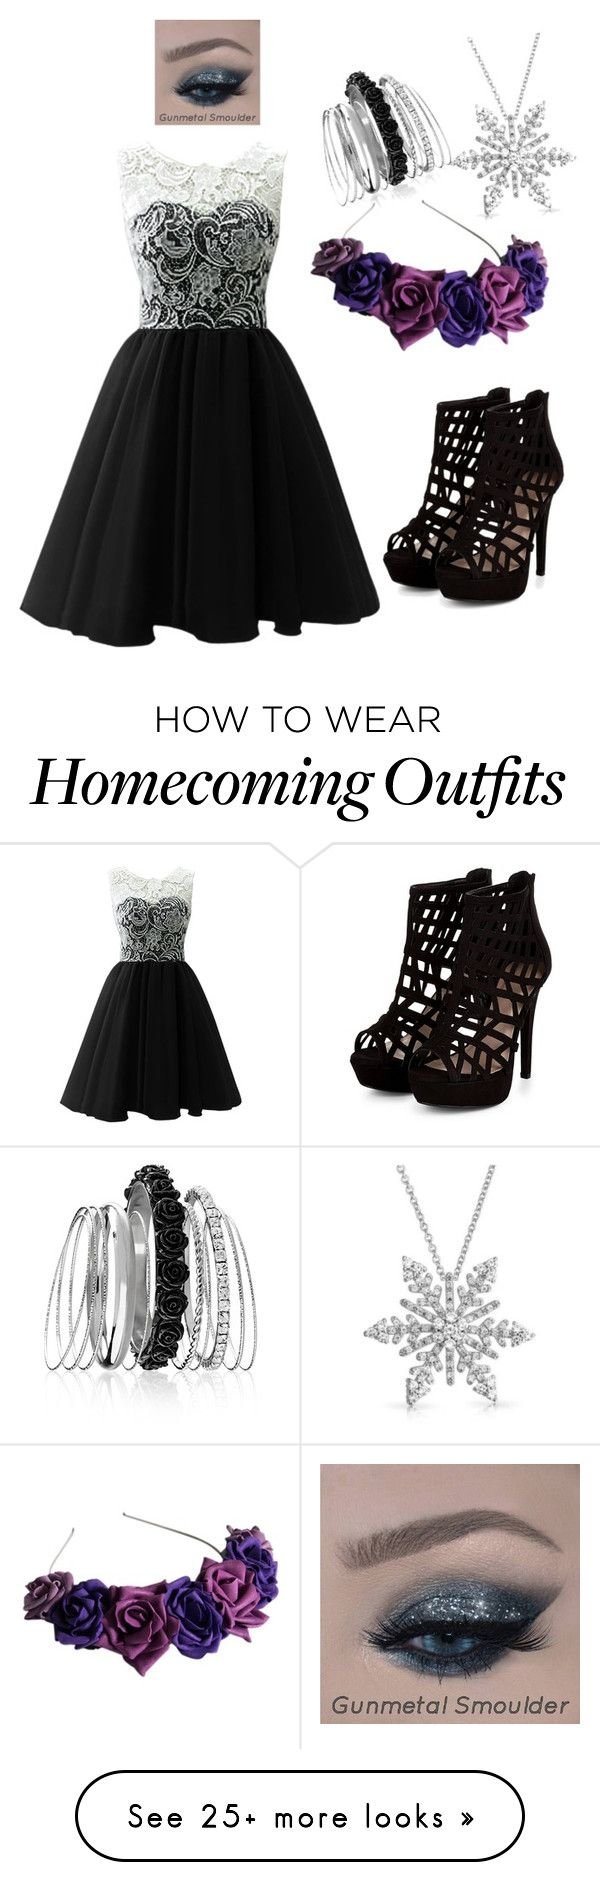 """Untitled #53"" by worldsuicide on Polyvore featuring LOTTA, Bling Jewelry and Avenue"